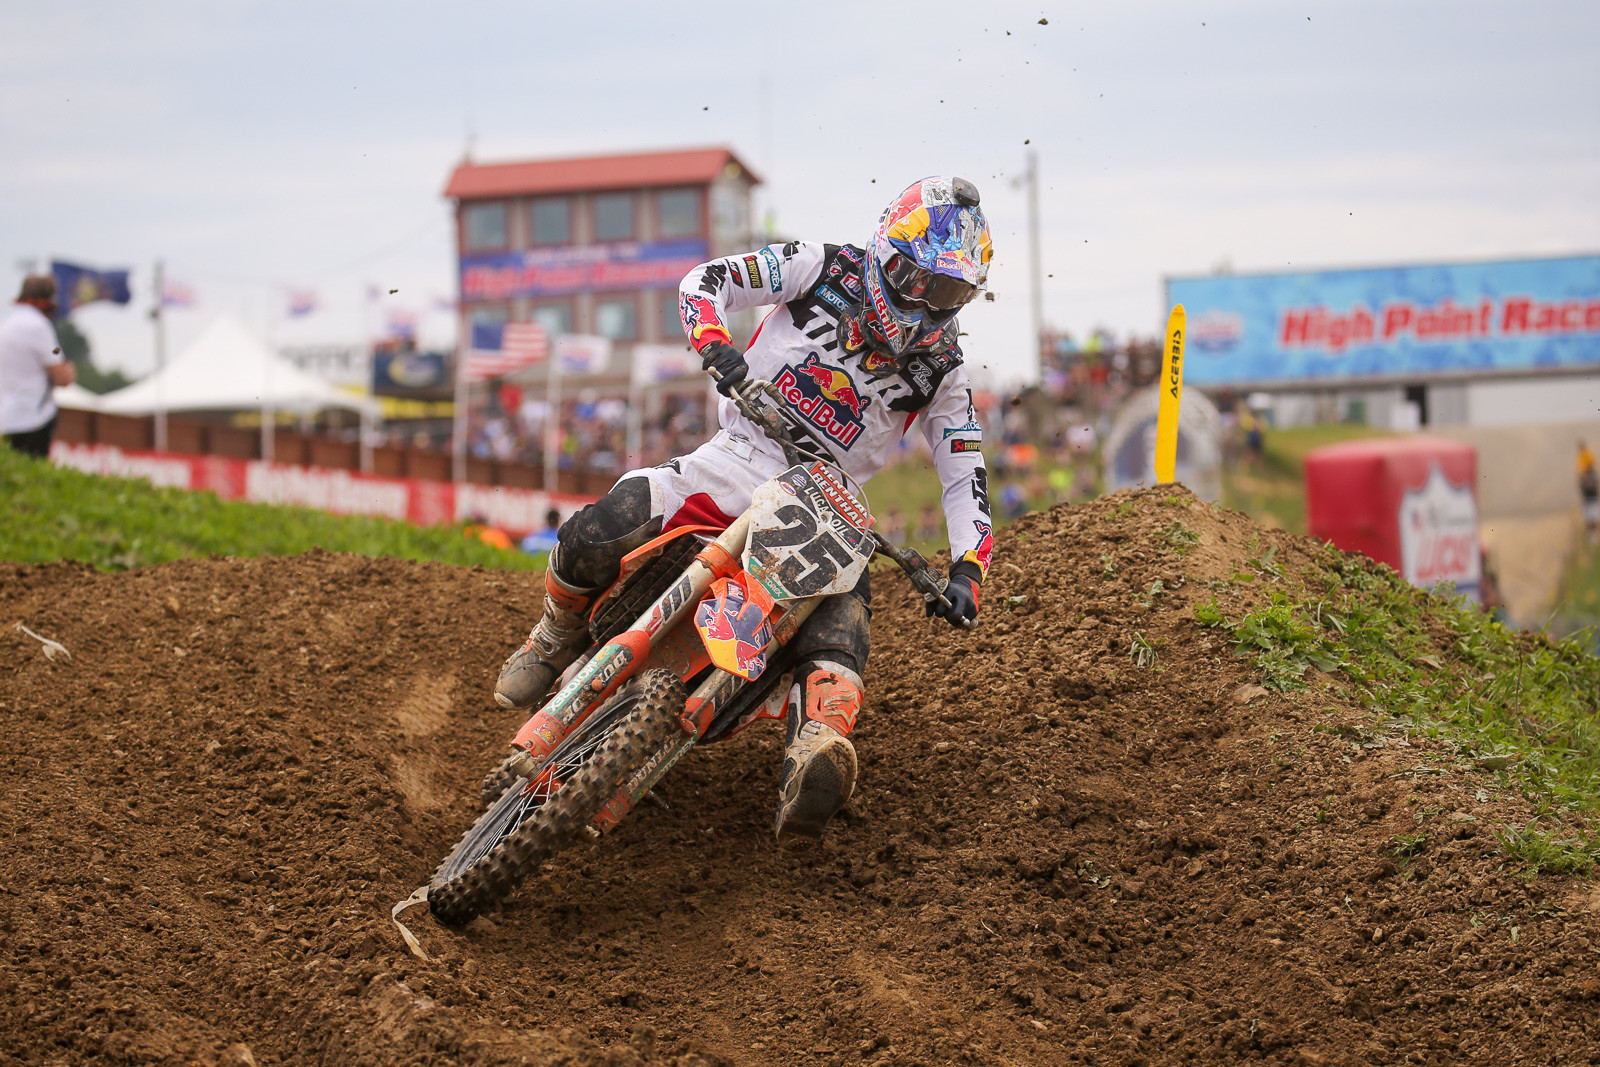 Marvin Musquin was fourth in moto one, and had an amazing ride in moto two to get back to seventh after a crash.